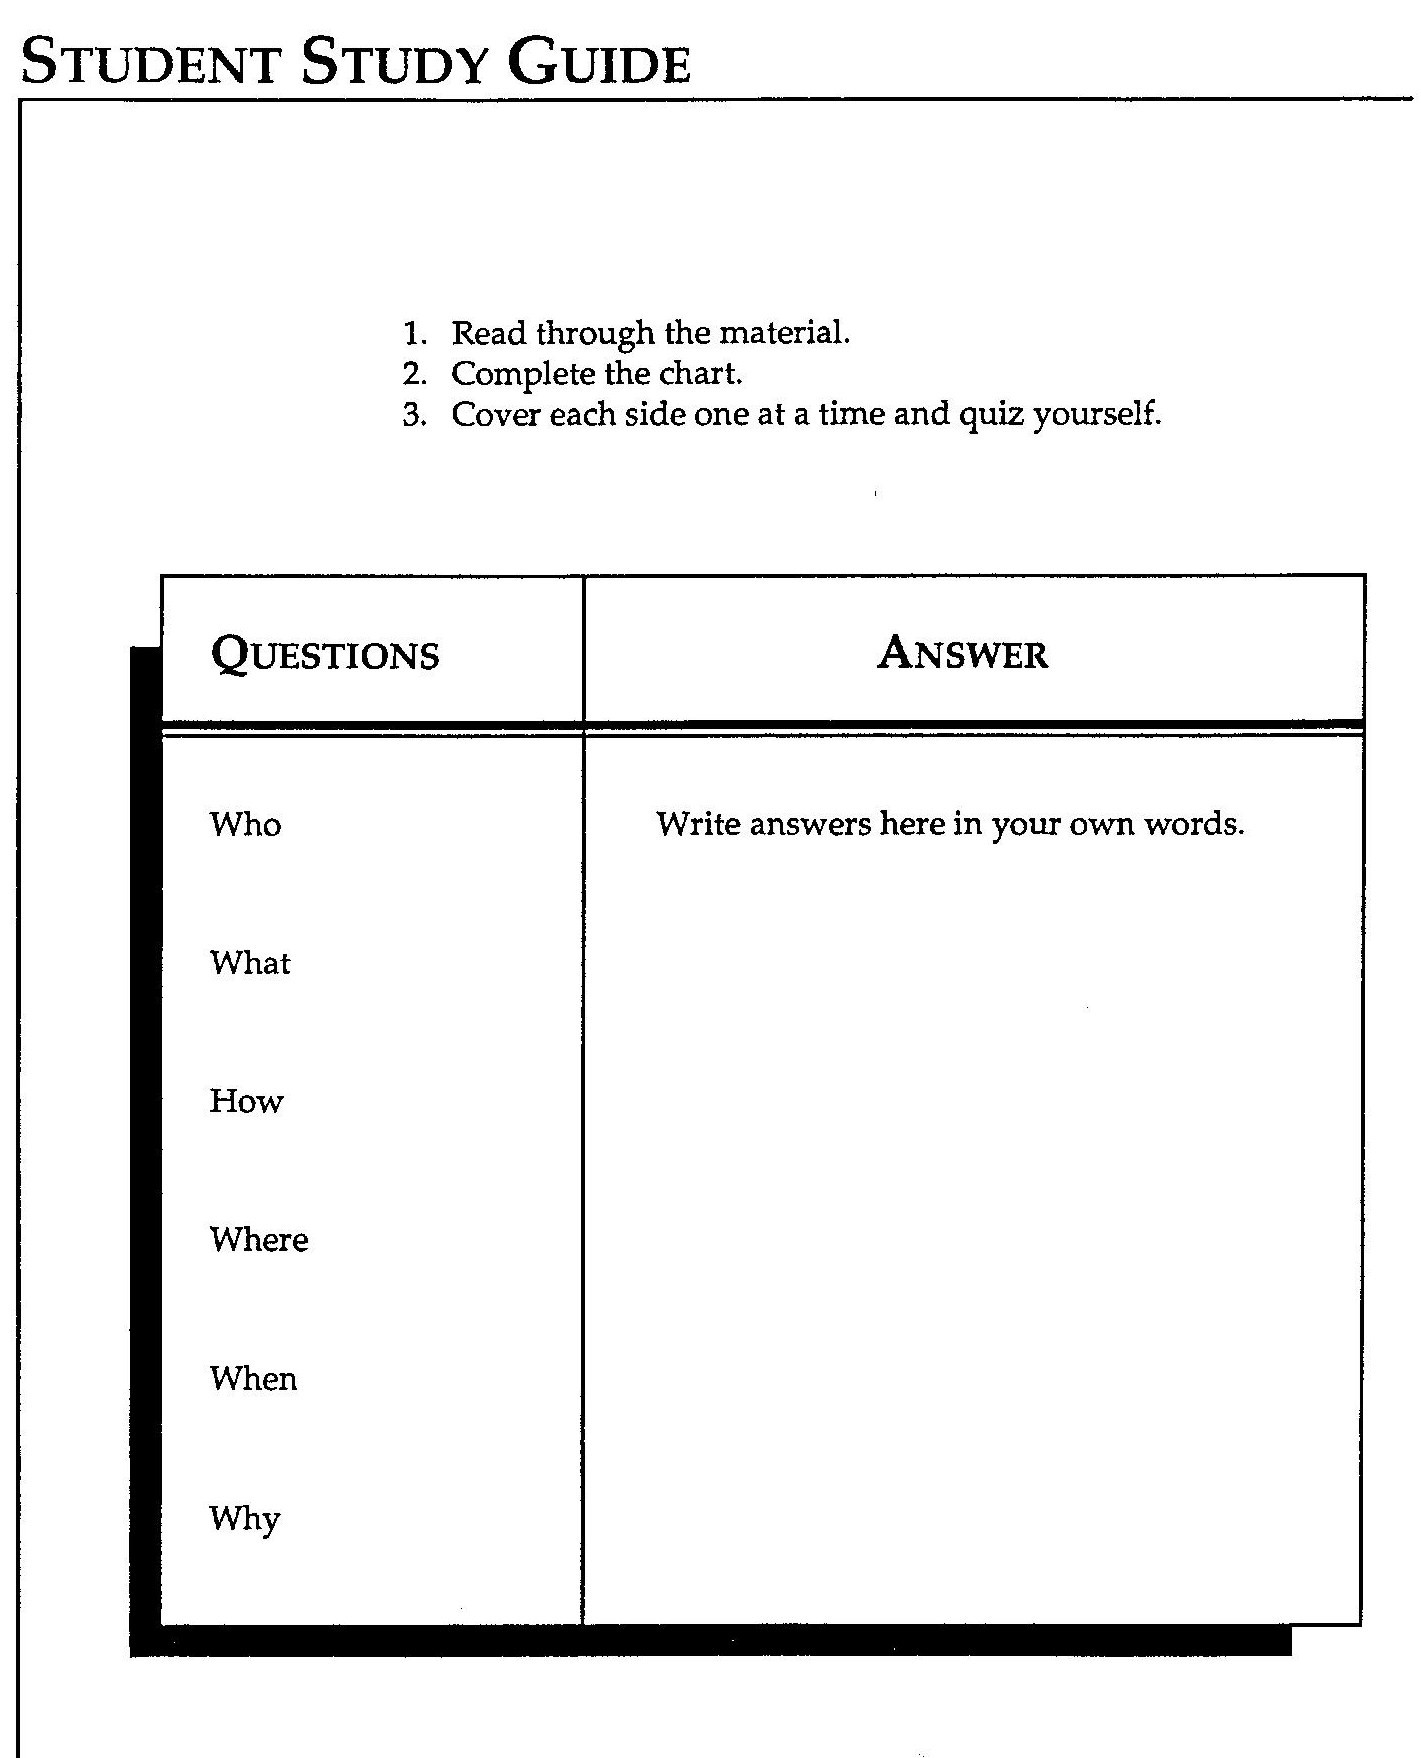 Habits Mind Worksheet